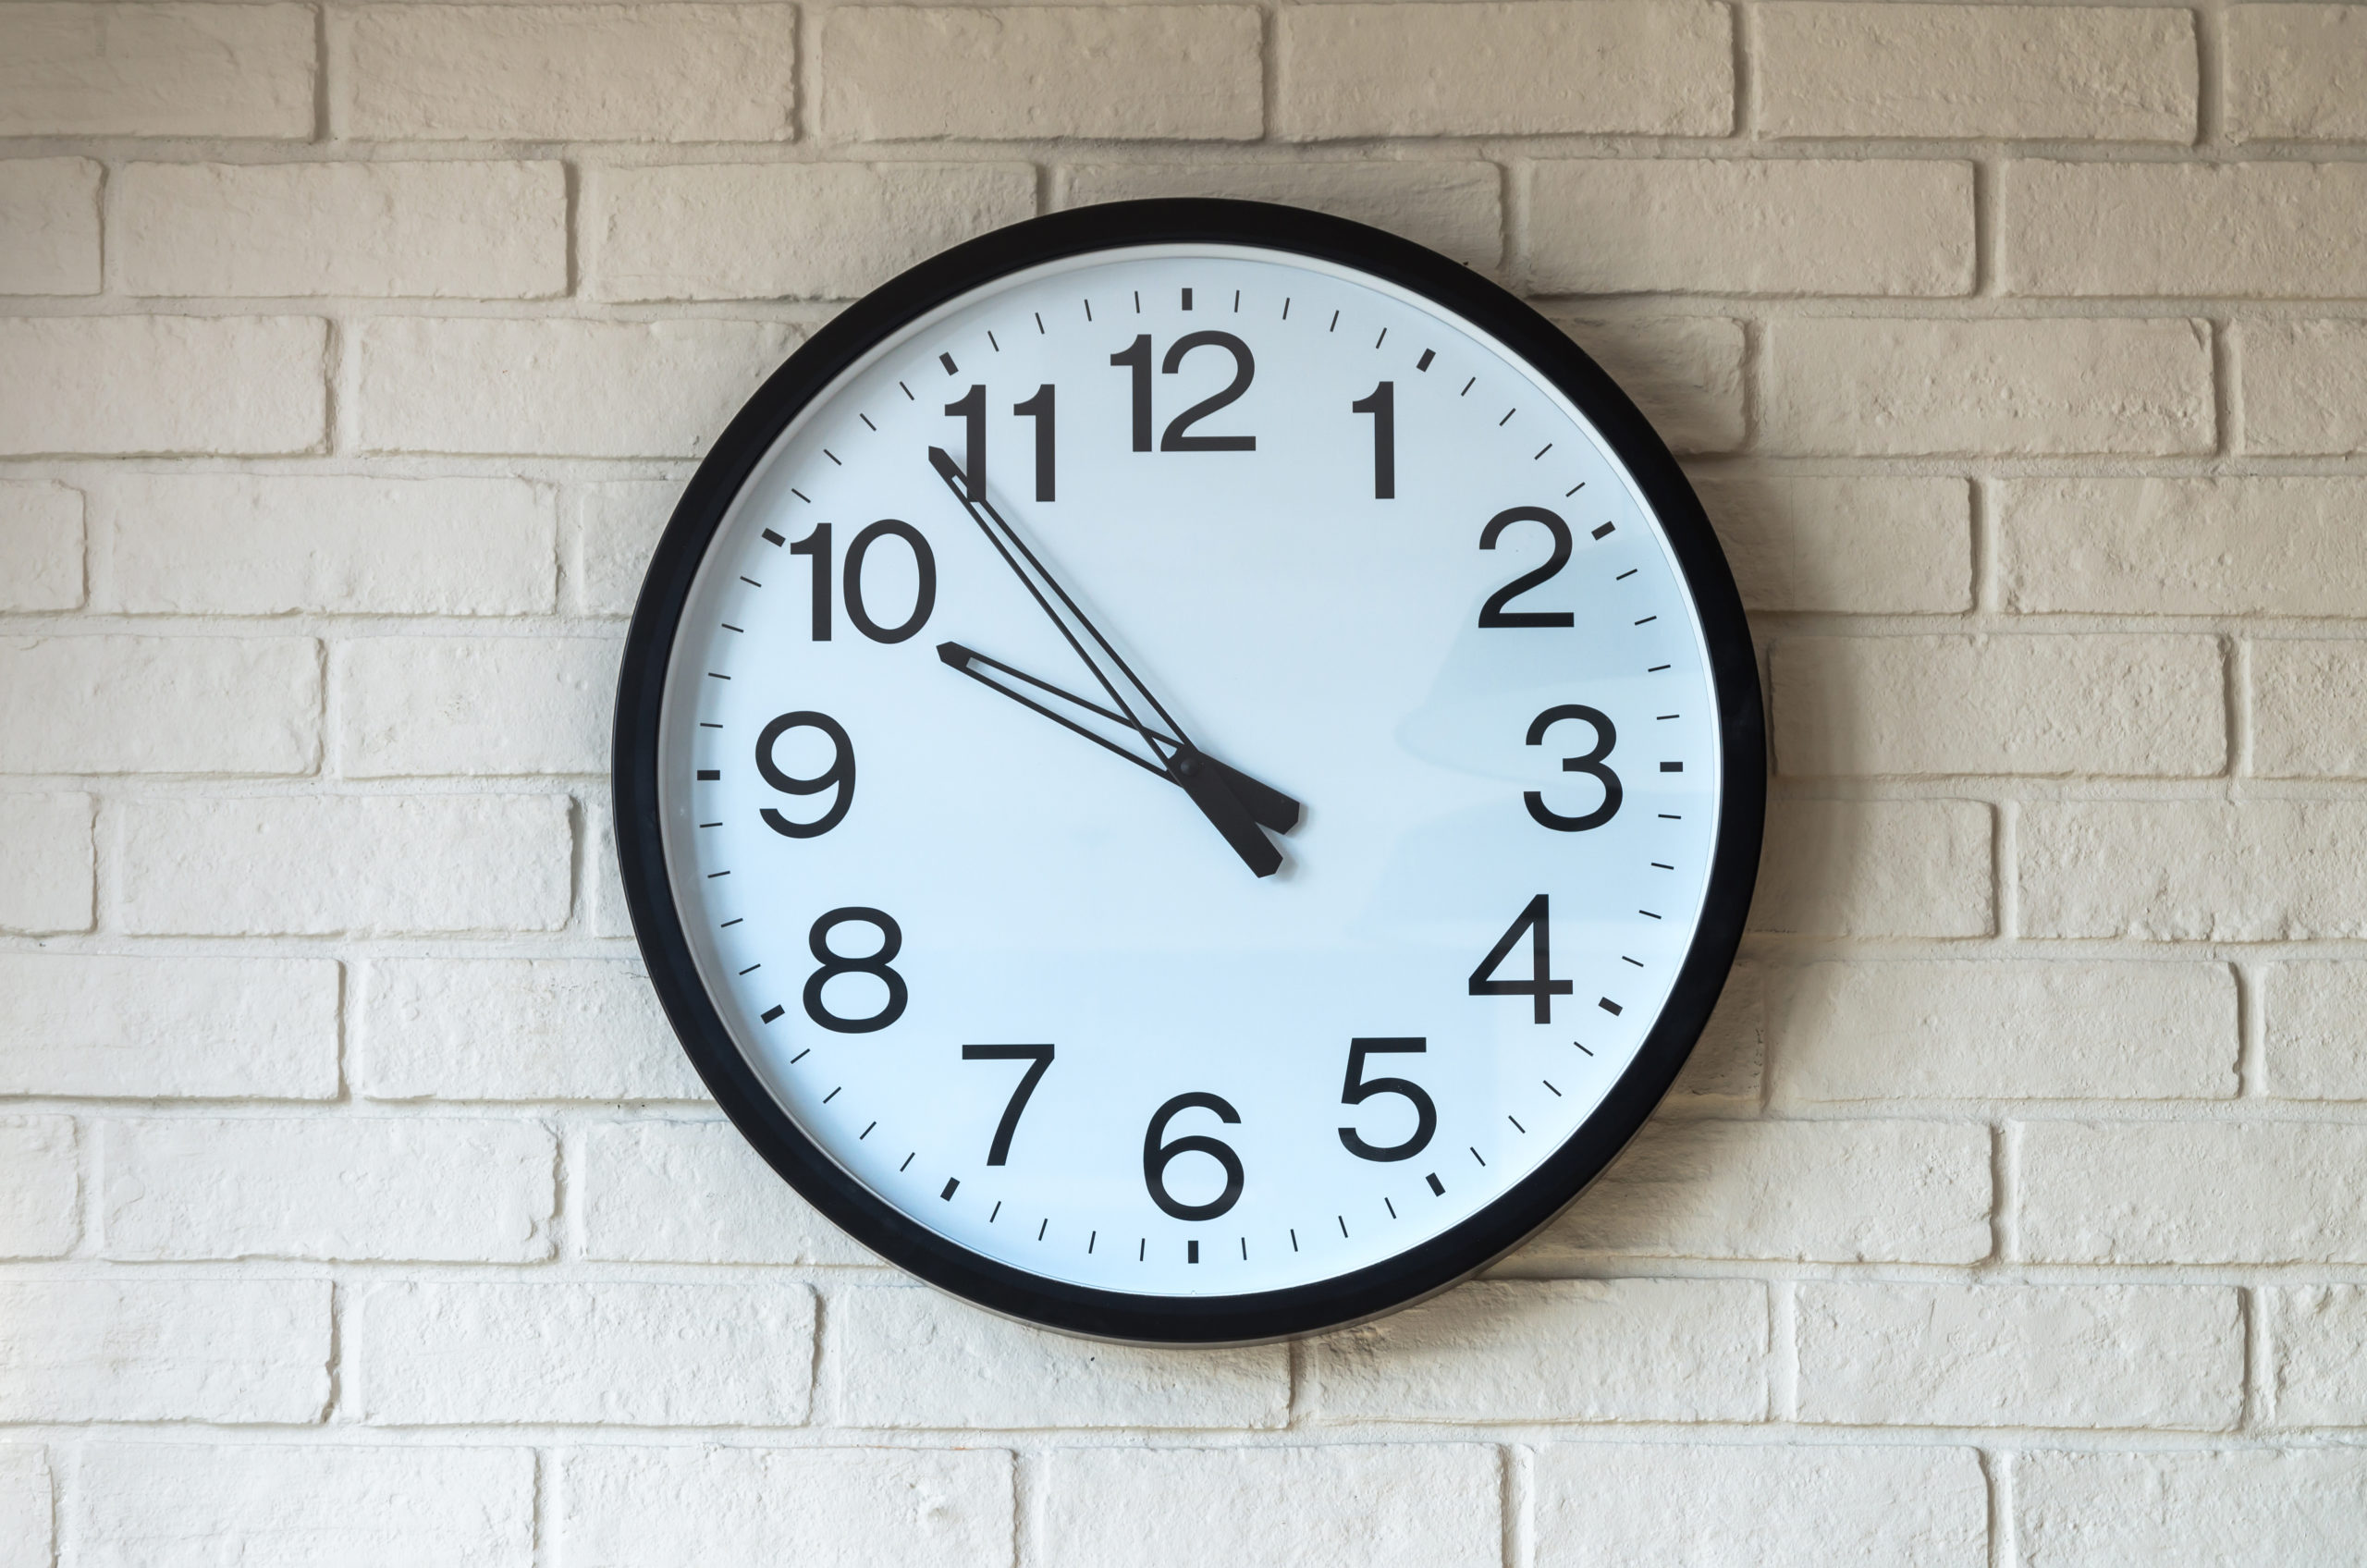 a clock on brick wall displaying the time 9:53